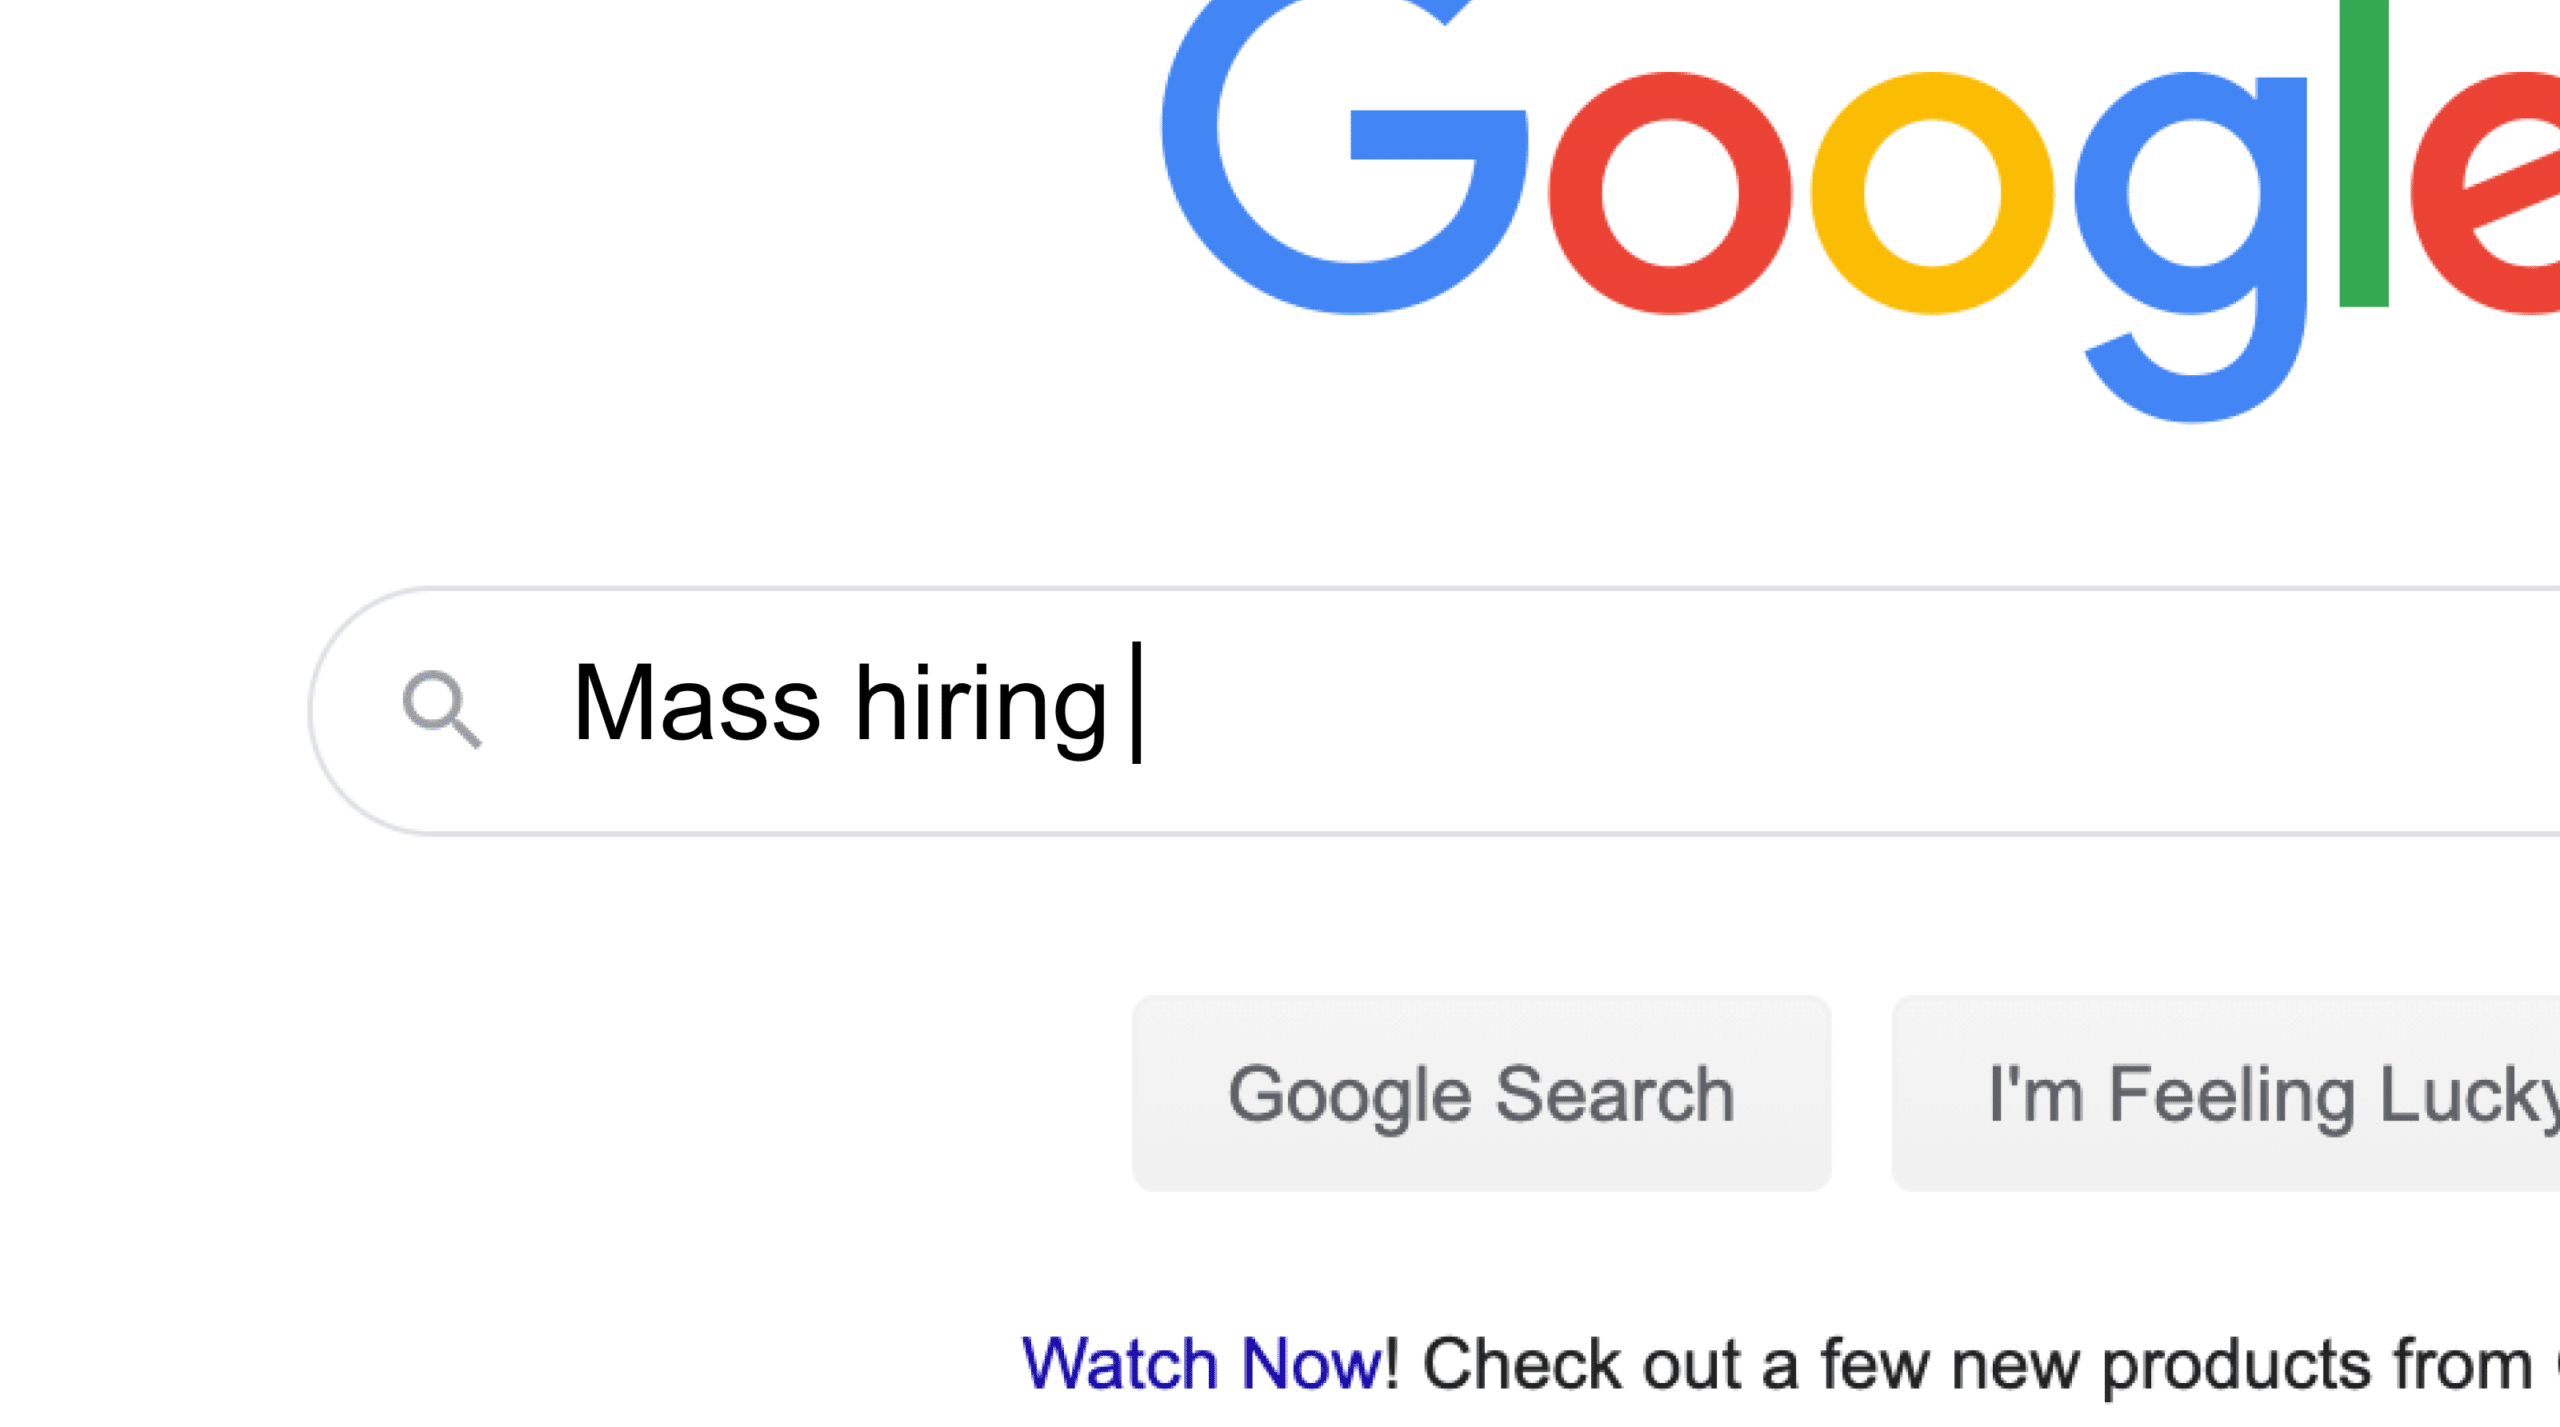 Google search for mass hiring